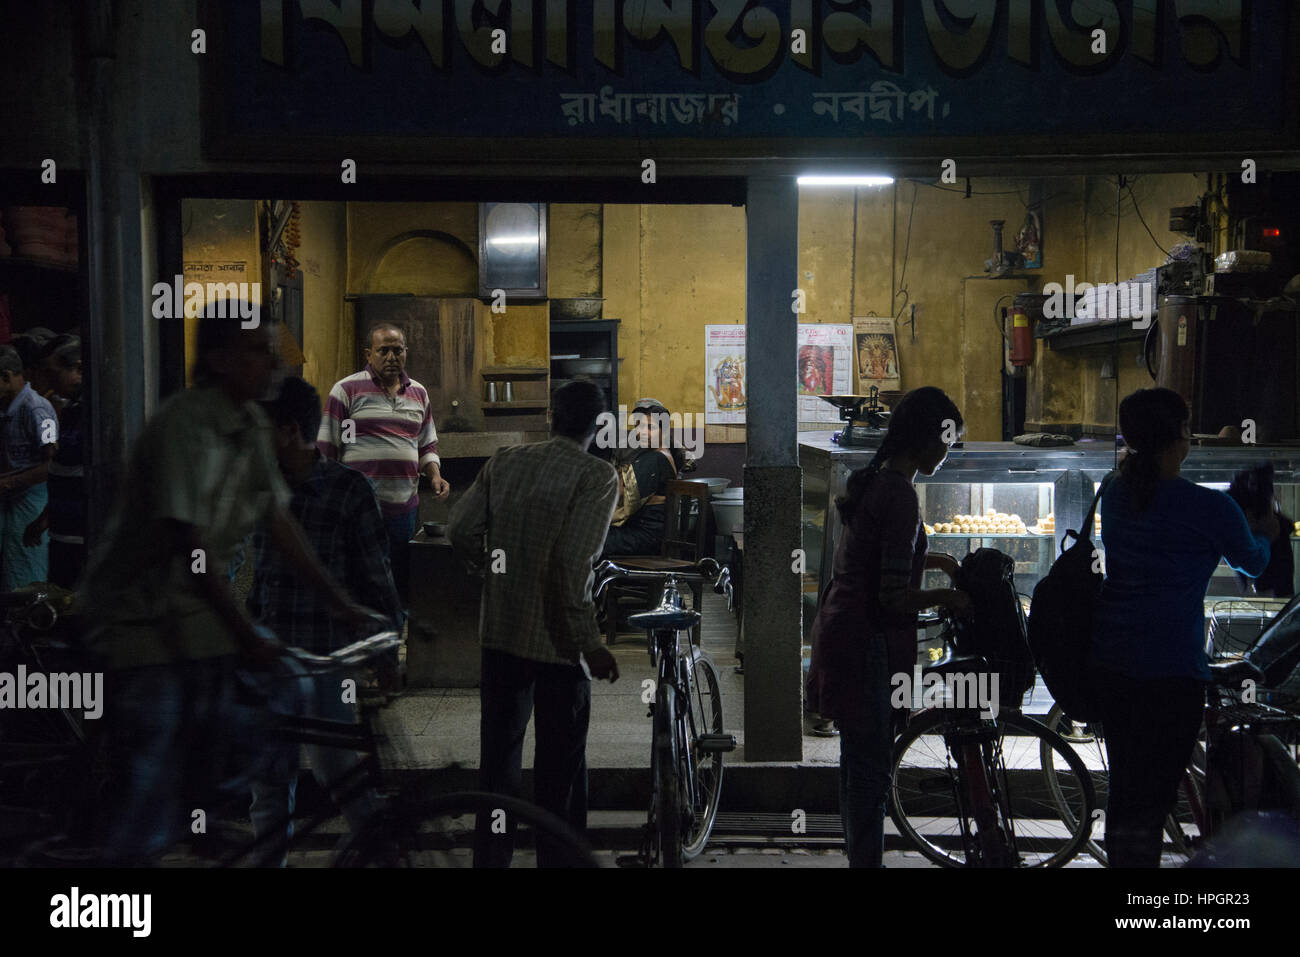 Sweet shop at night, Navadwipa, India. - Stock Image